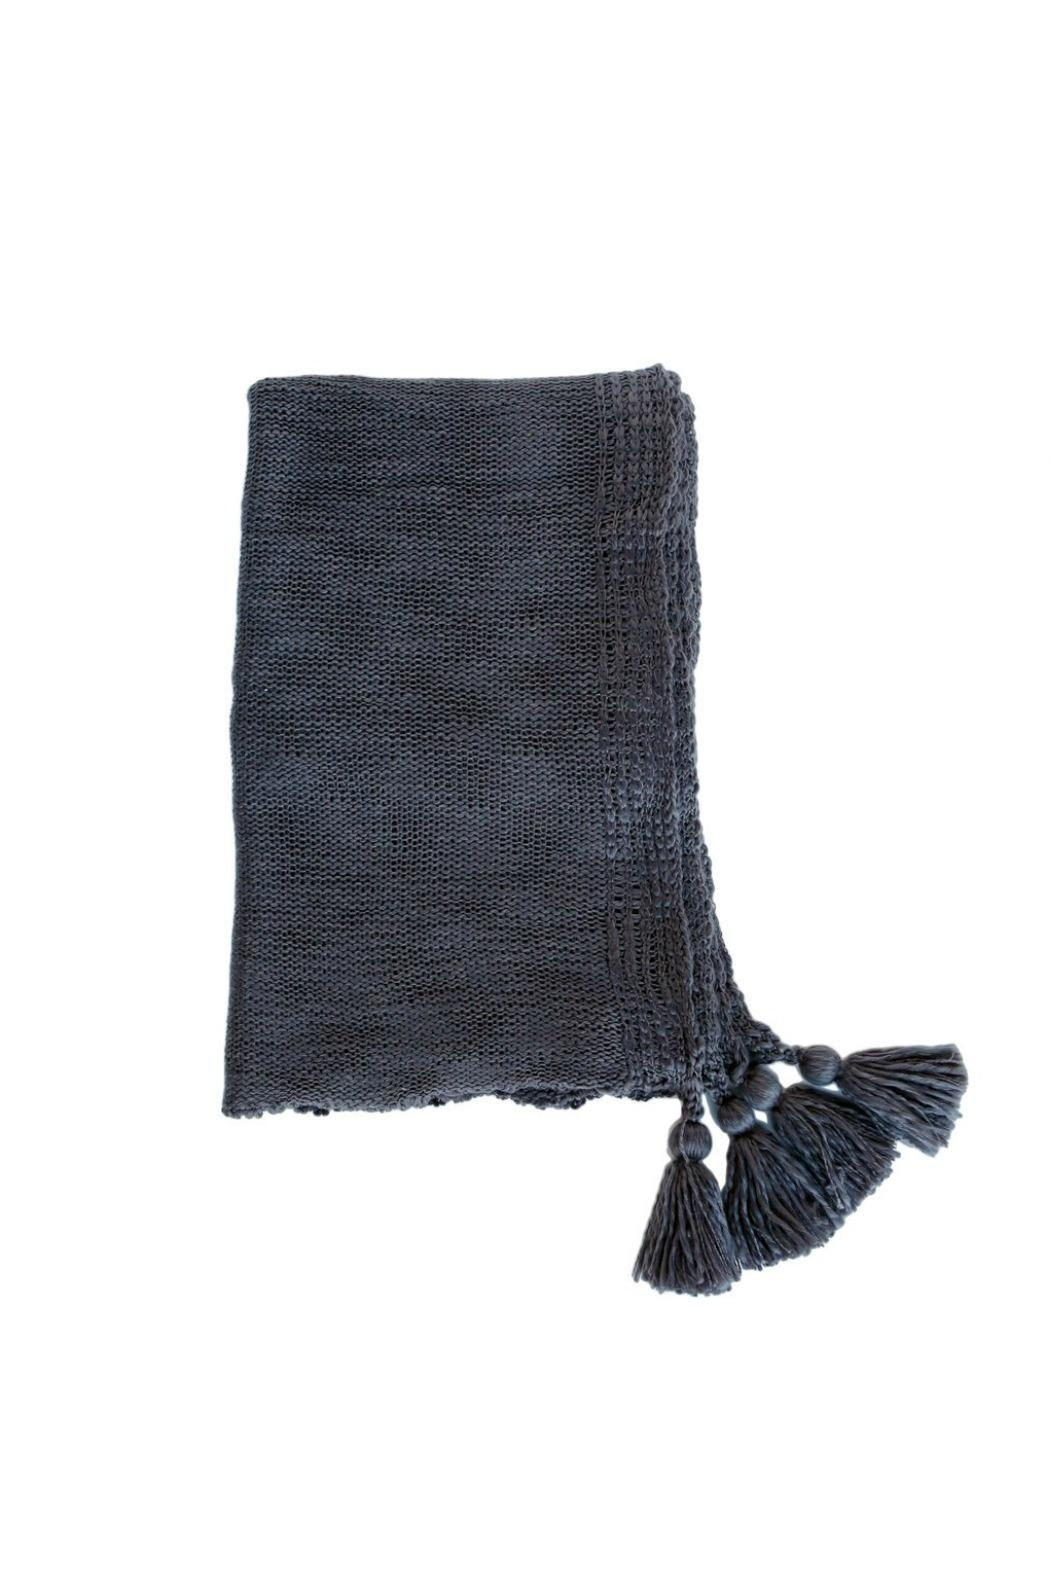 Pom Pom at Home Knit Tassel Throw - Front Cropped Image